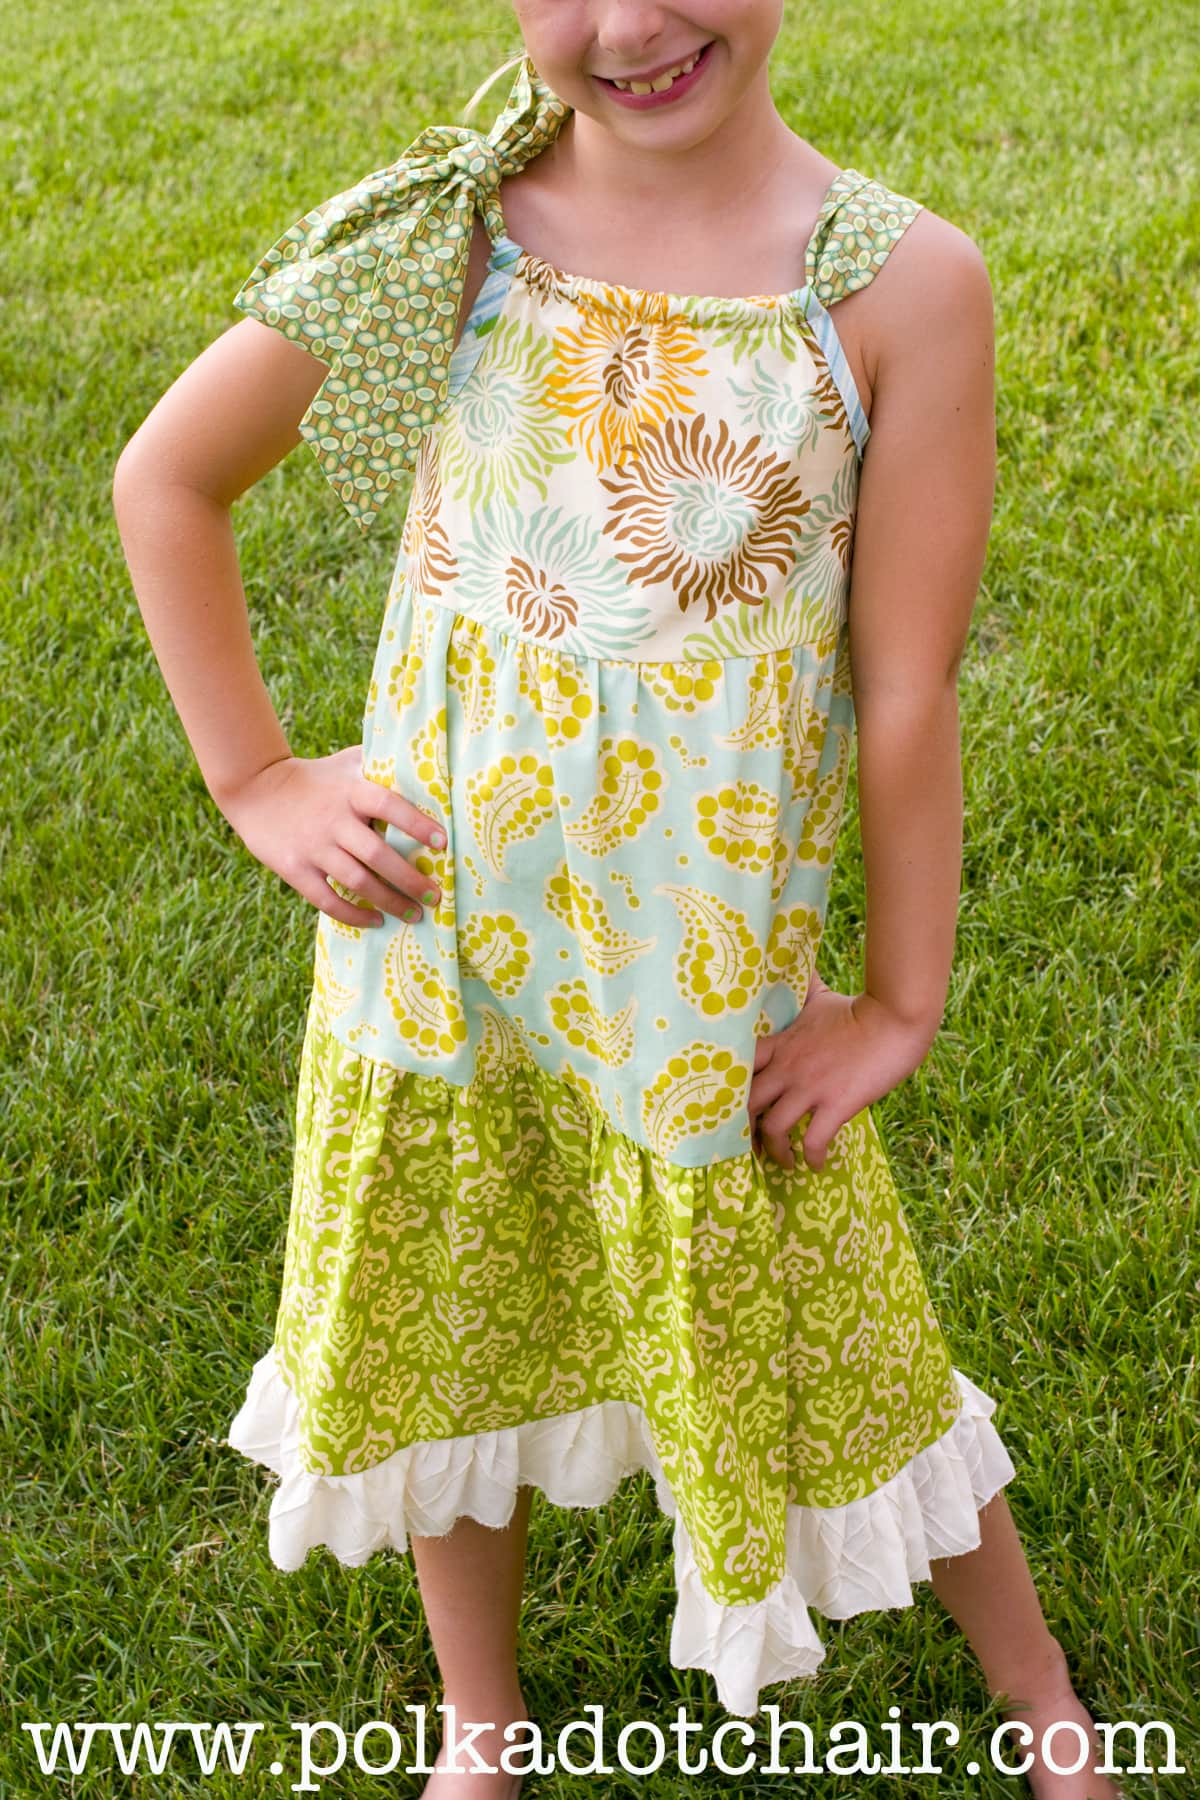 Tuesday Tutorial Tiered Pillowcase Dress The Polkadot Chair